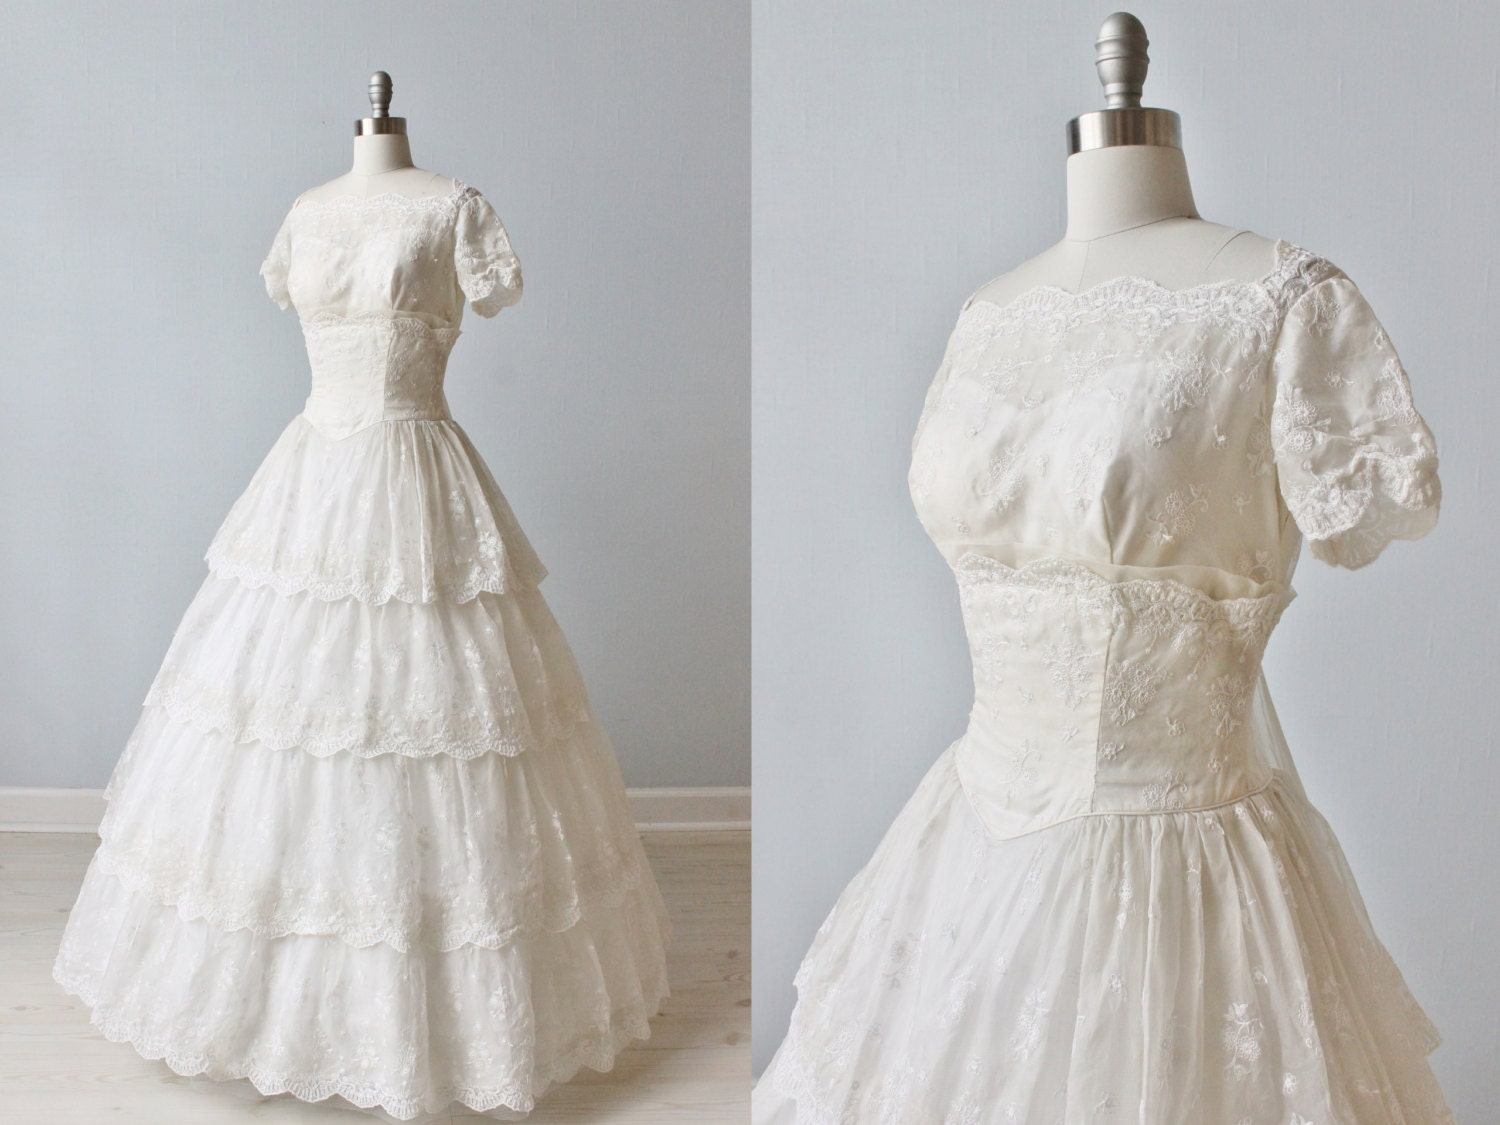 Vintage 1950s Wedding Dress 1950s Embro red Wedding Gown